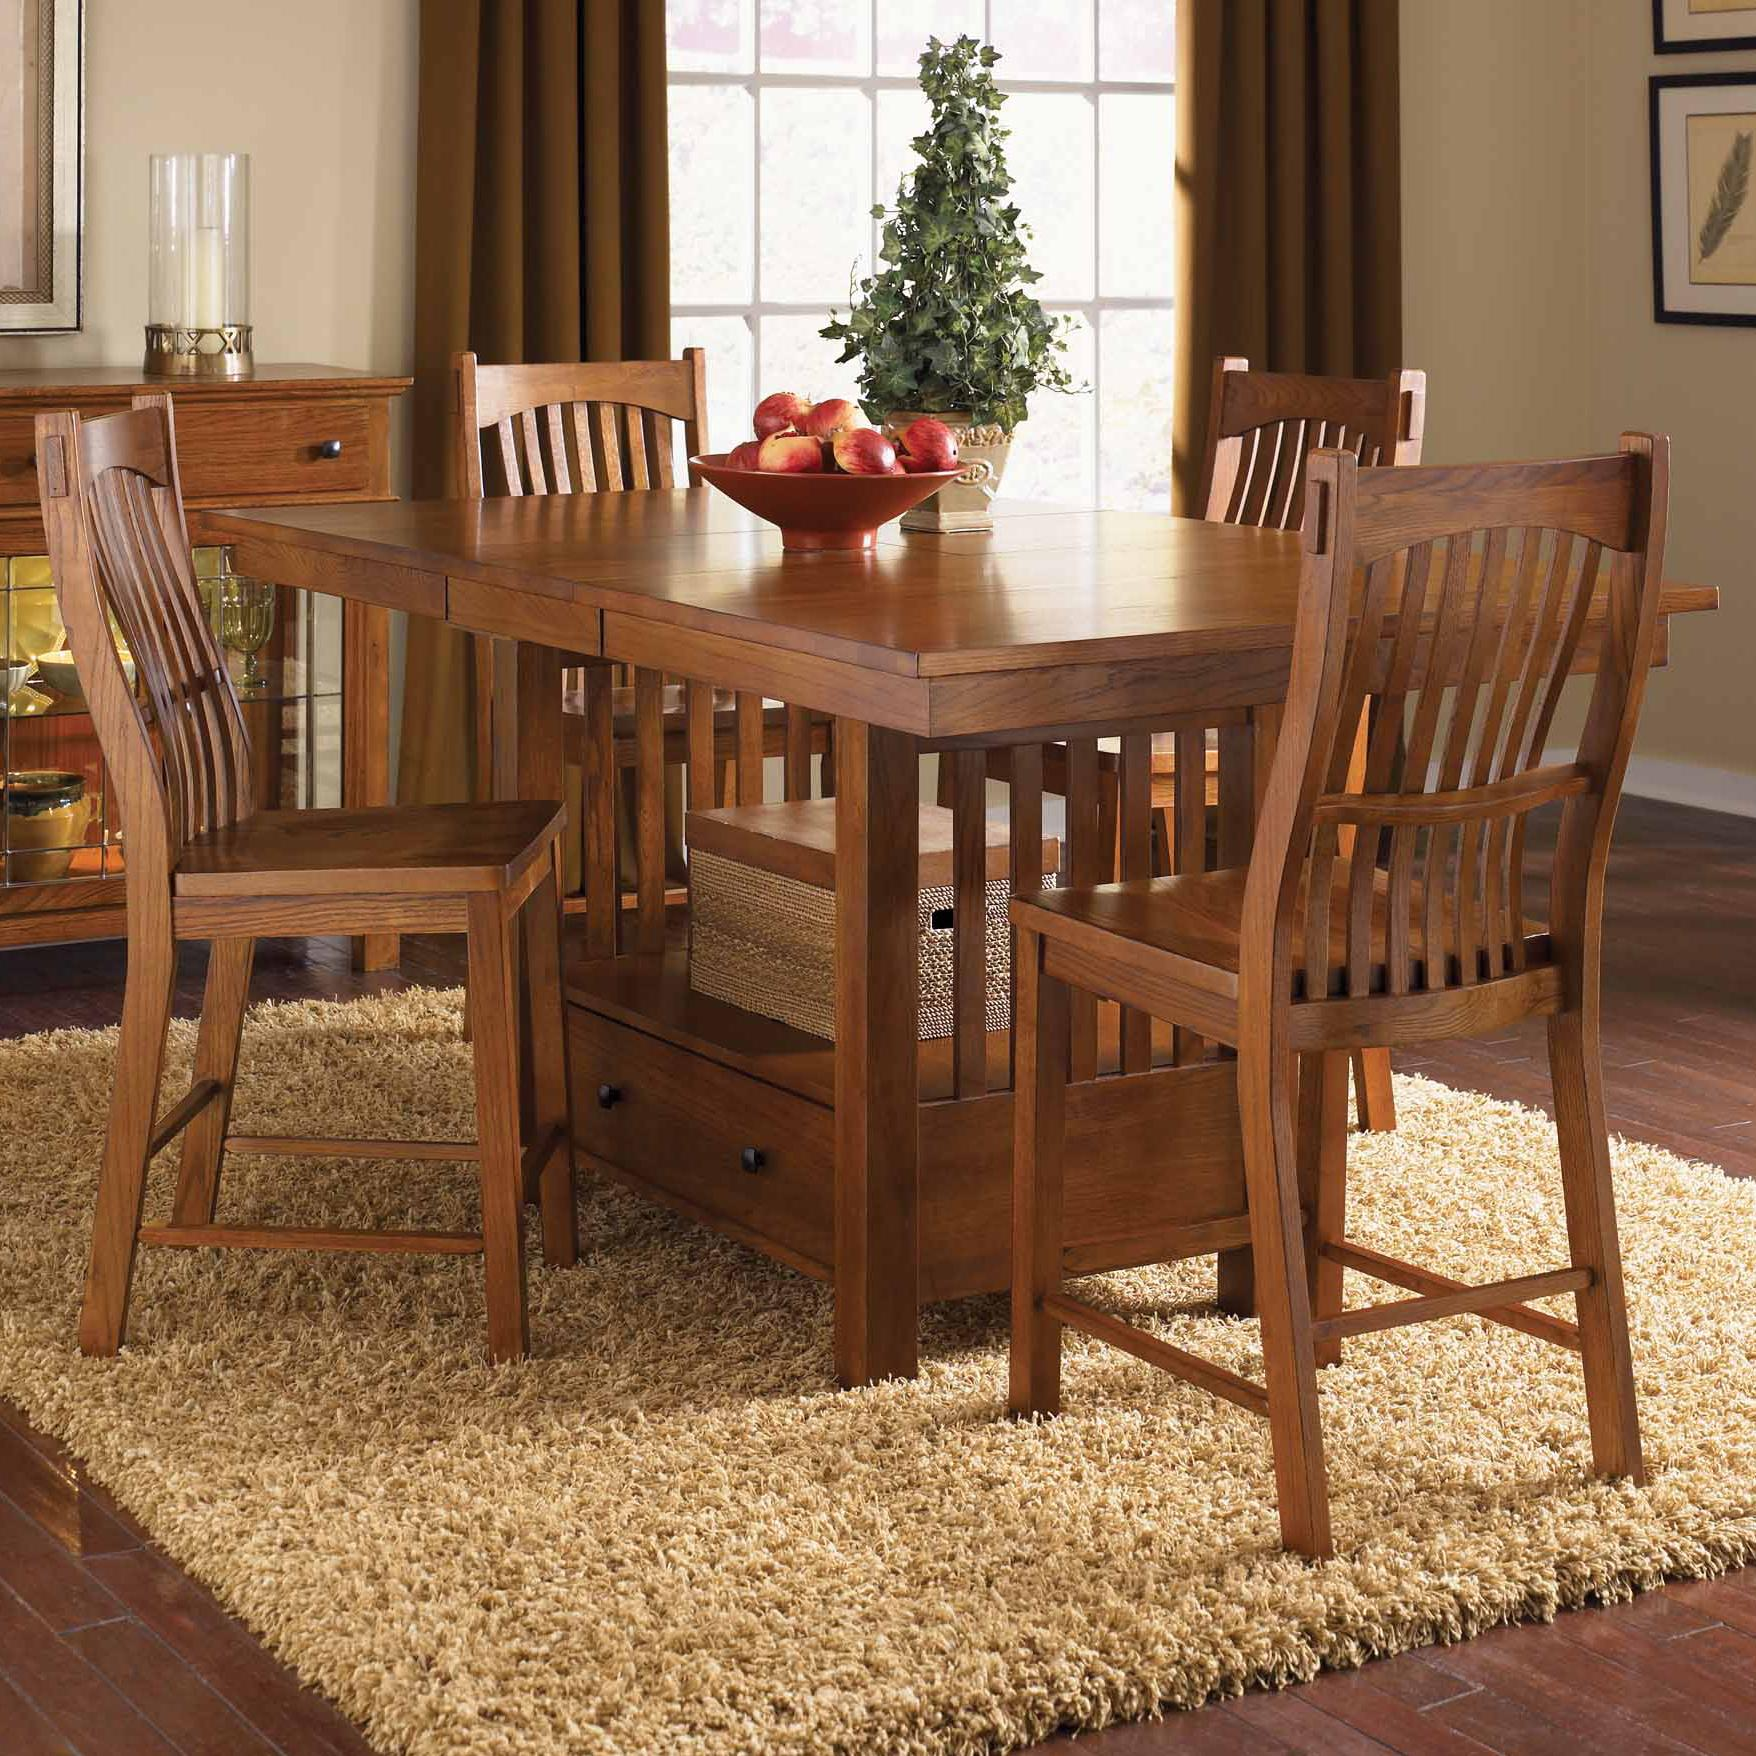 5-Piece Rect. Gathering Height Table Set